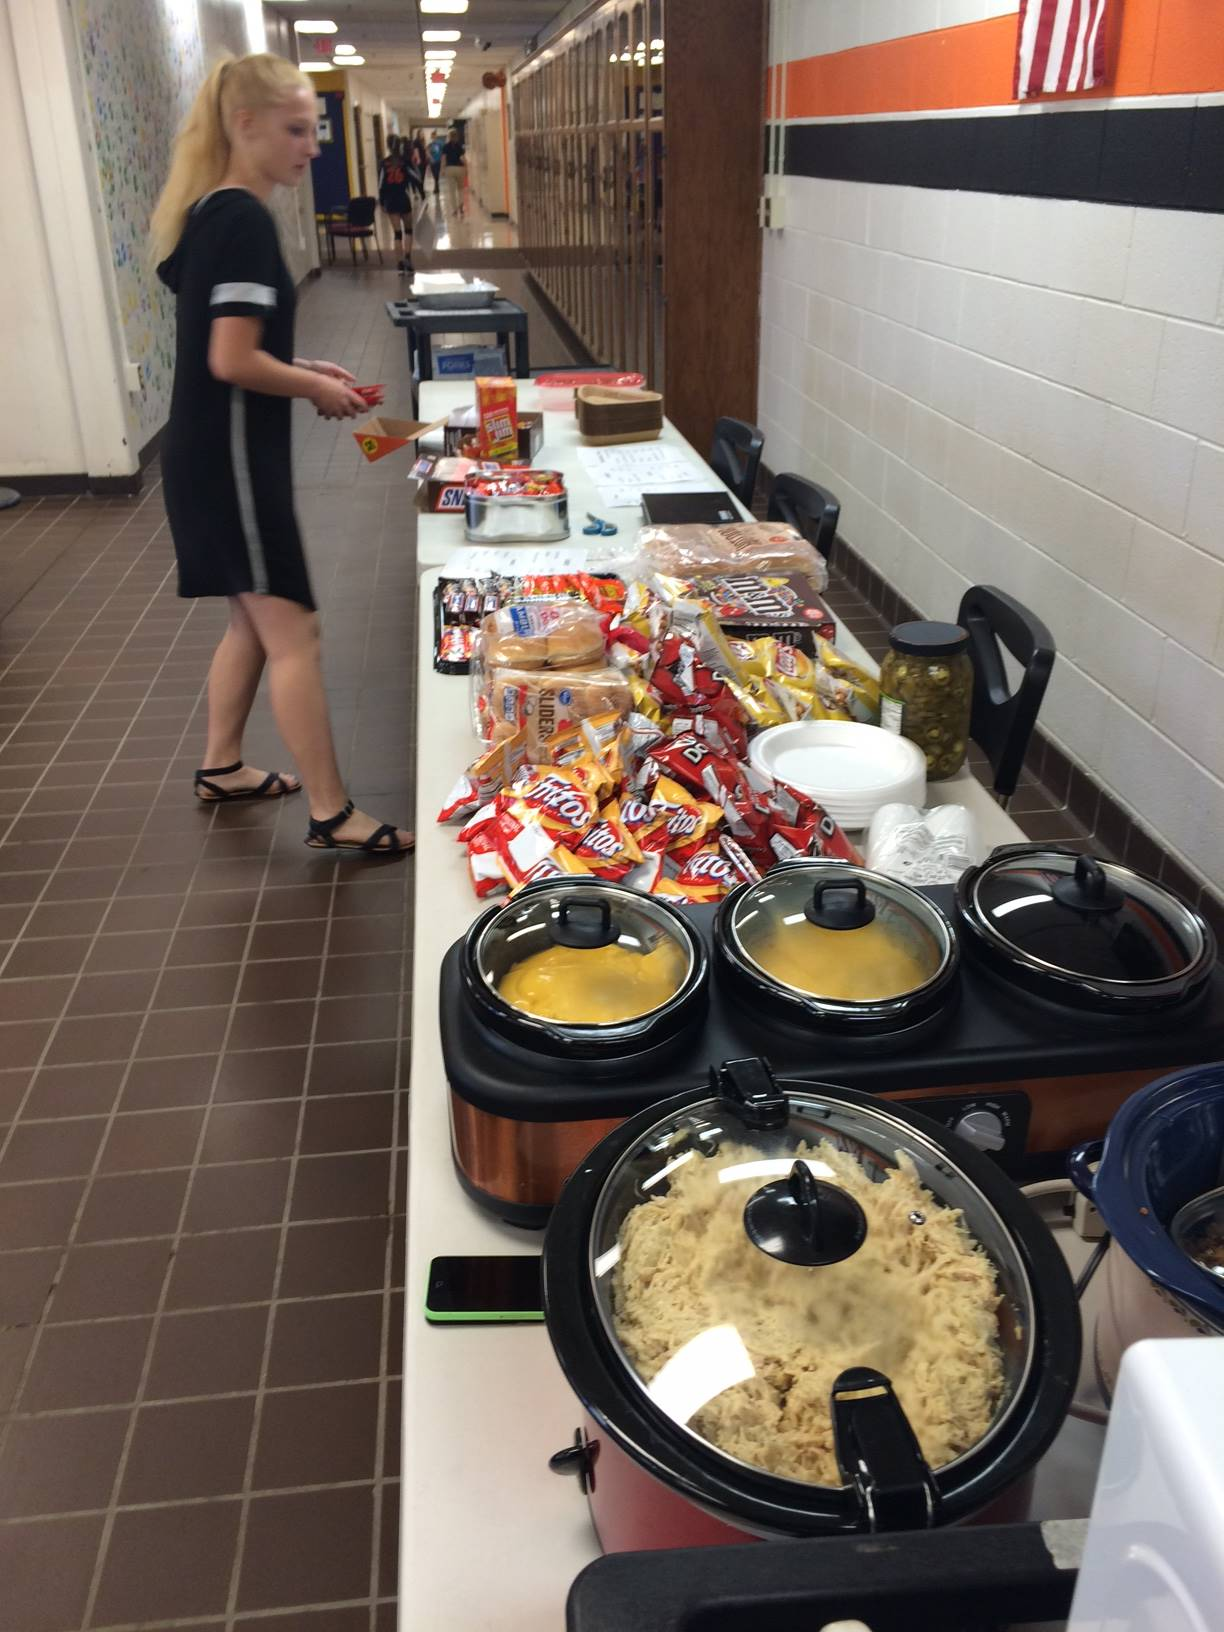 Concession Stand for Volleyball Attendees